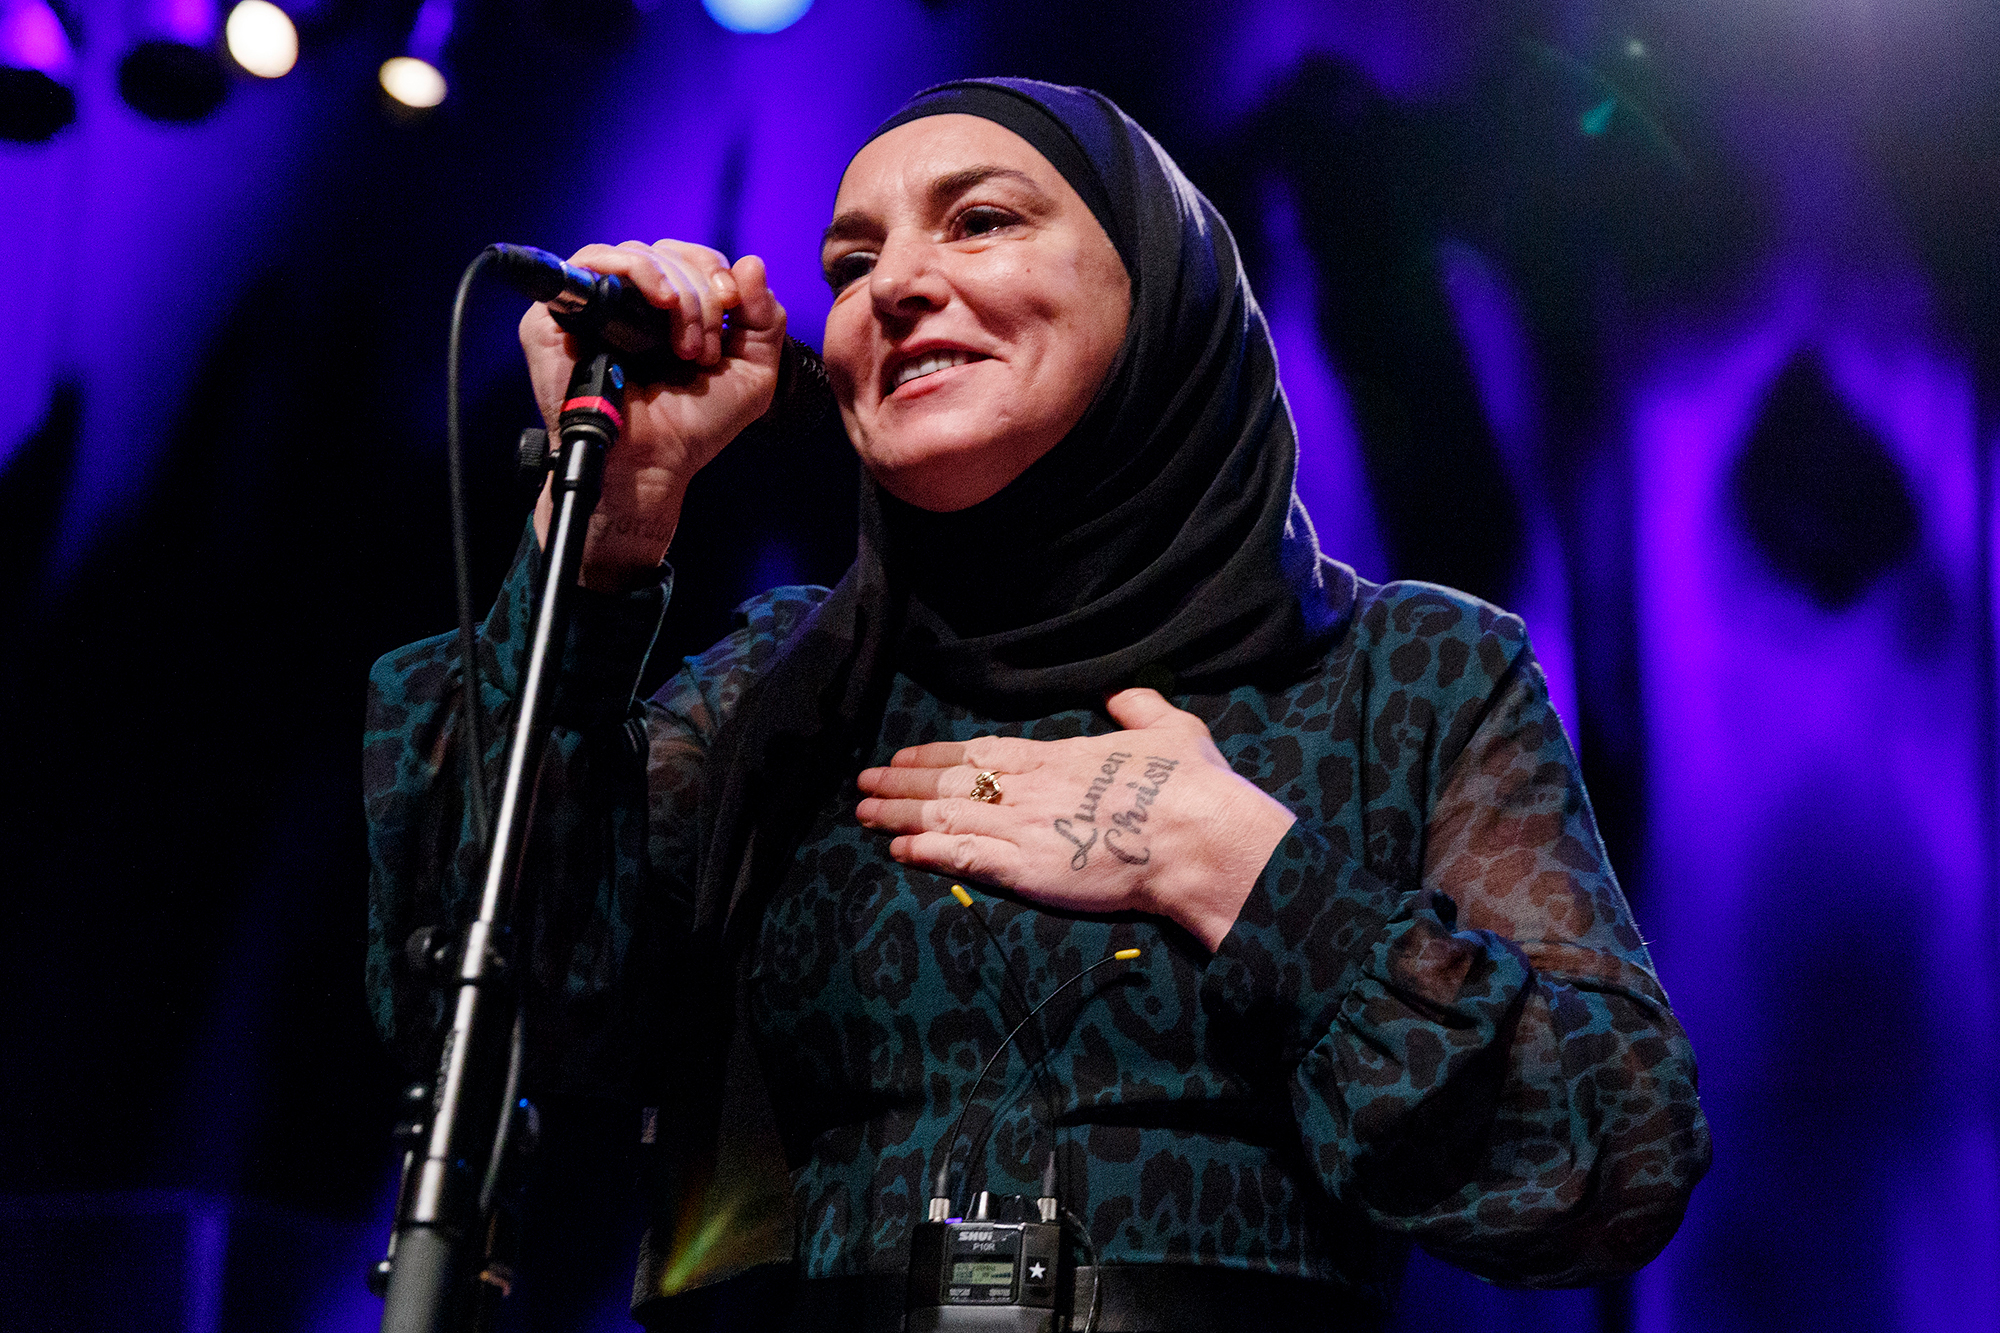 Sinead O'Connor Performs At The Vogue Theatre